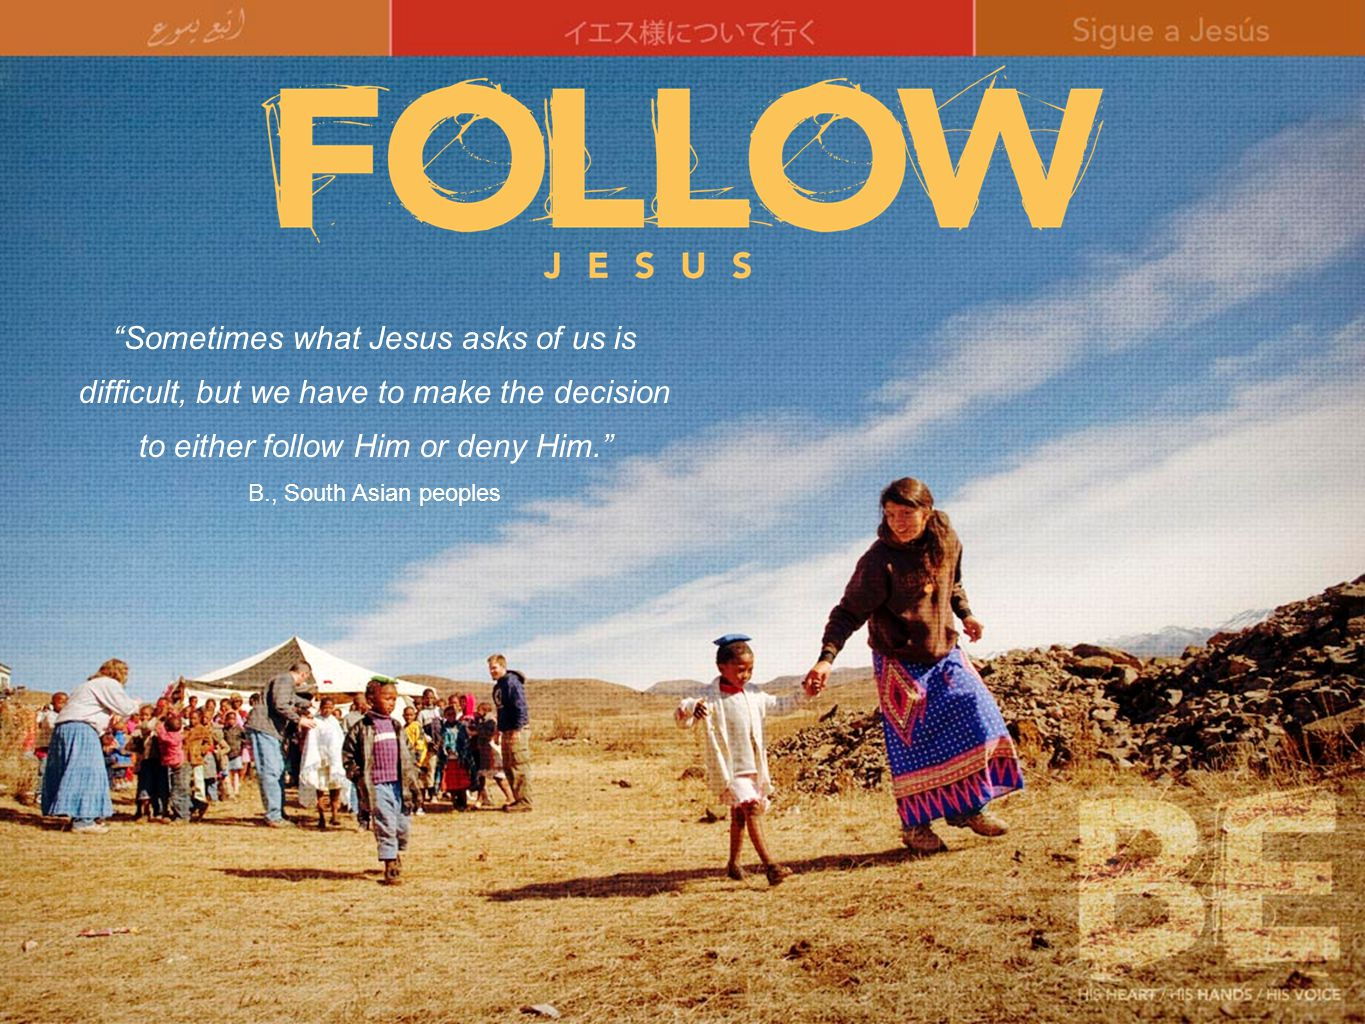 Sometimes what Jesus asks of us is difficult, but we have to make the decision to either follow Him or deny Him. B., South Asian peoples